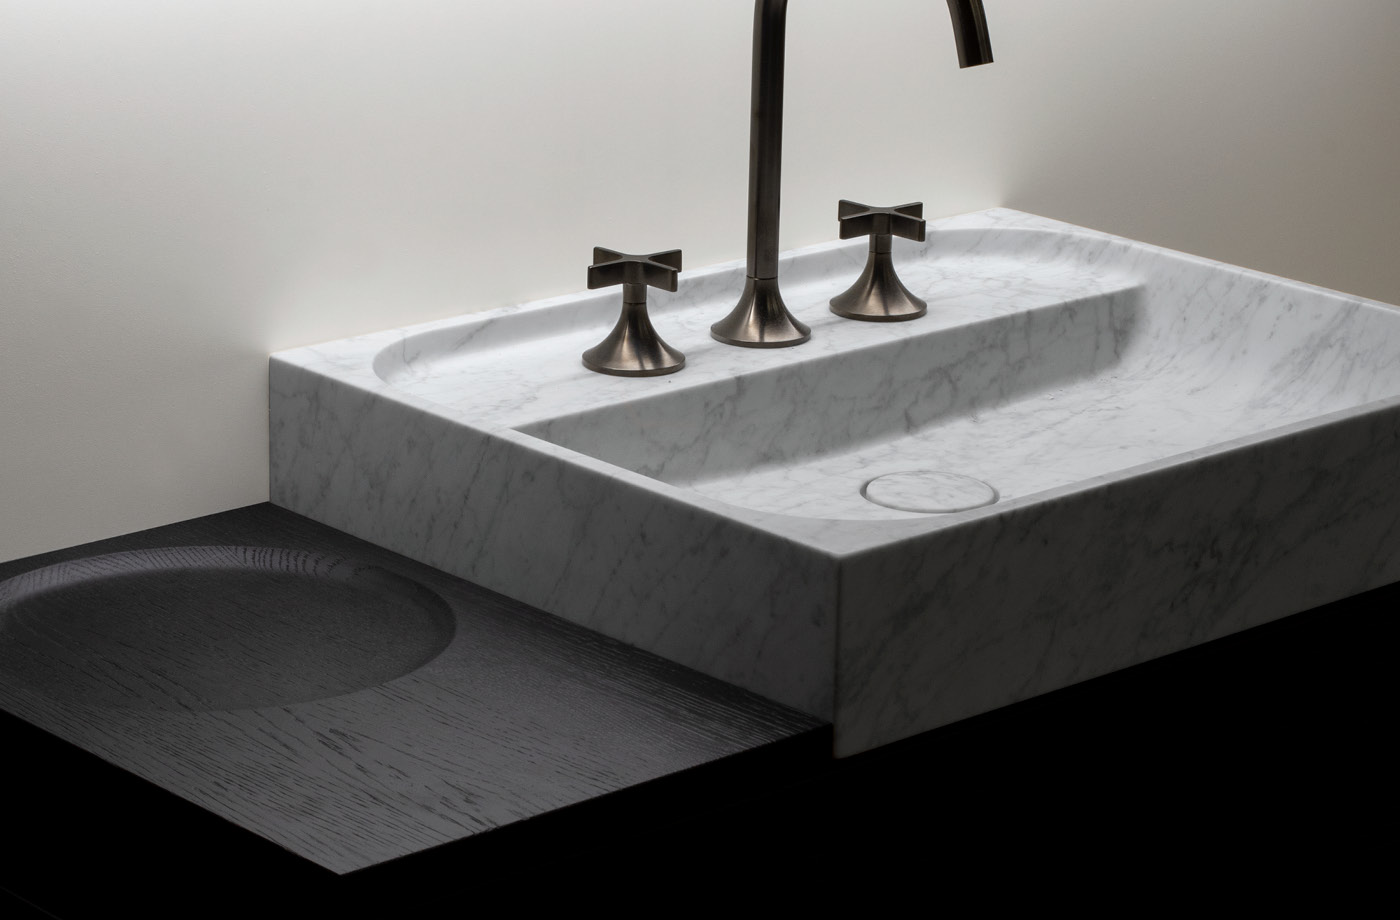 marble washbasin designed by tale designstudio gmbh